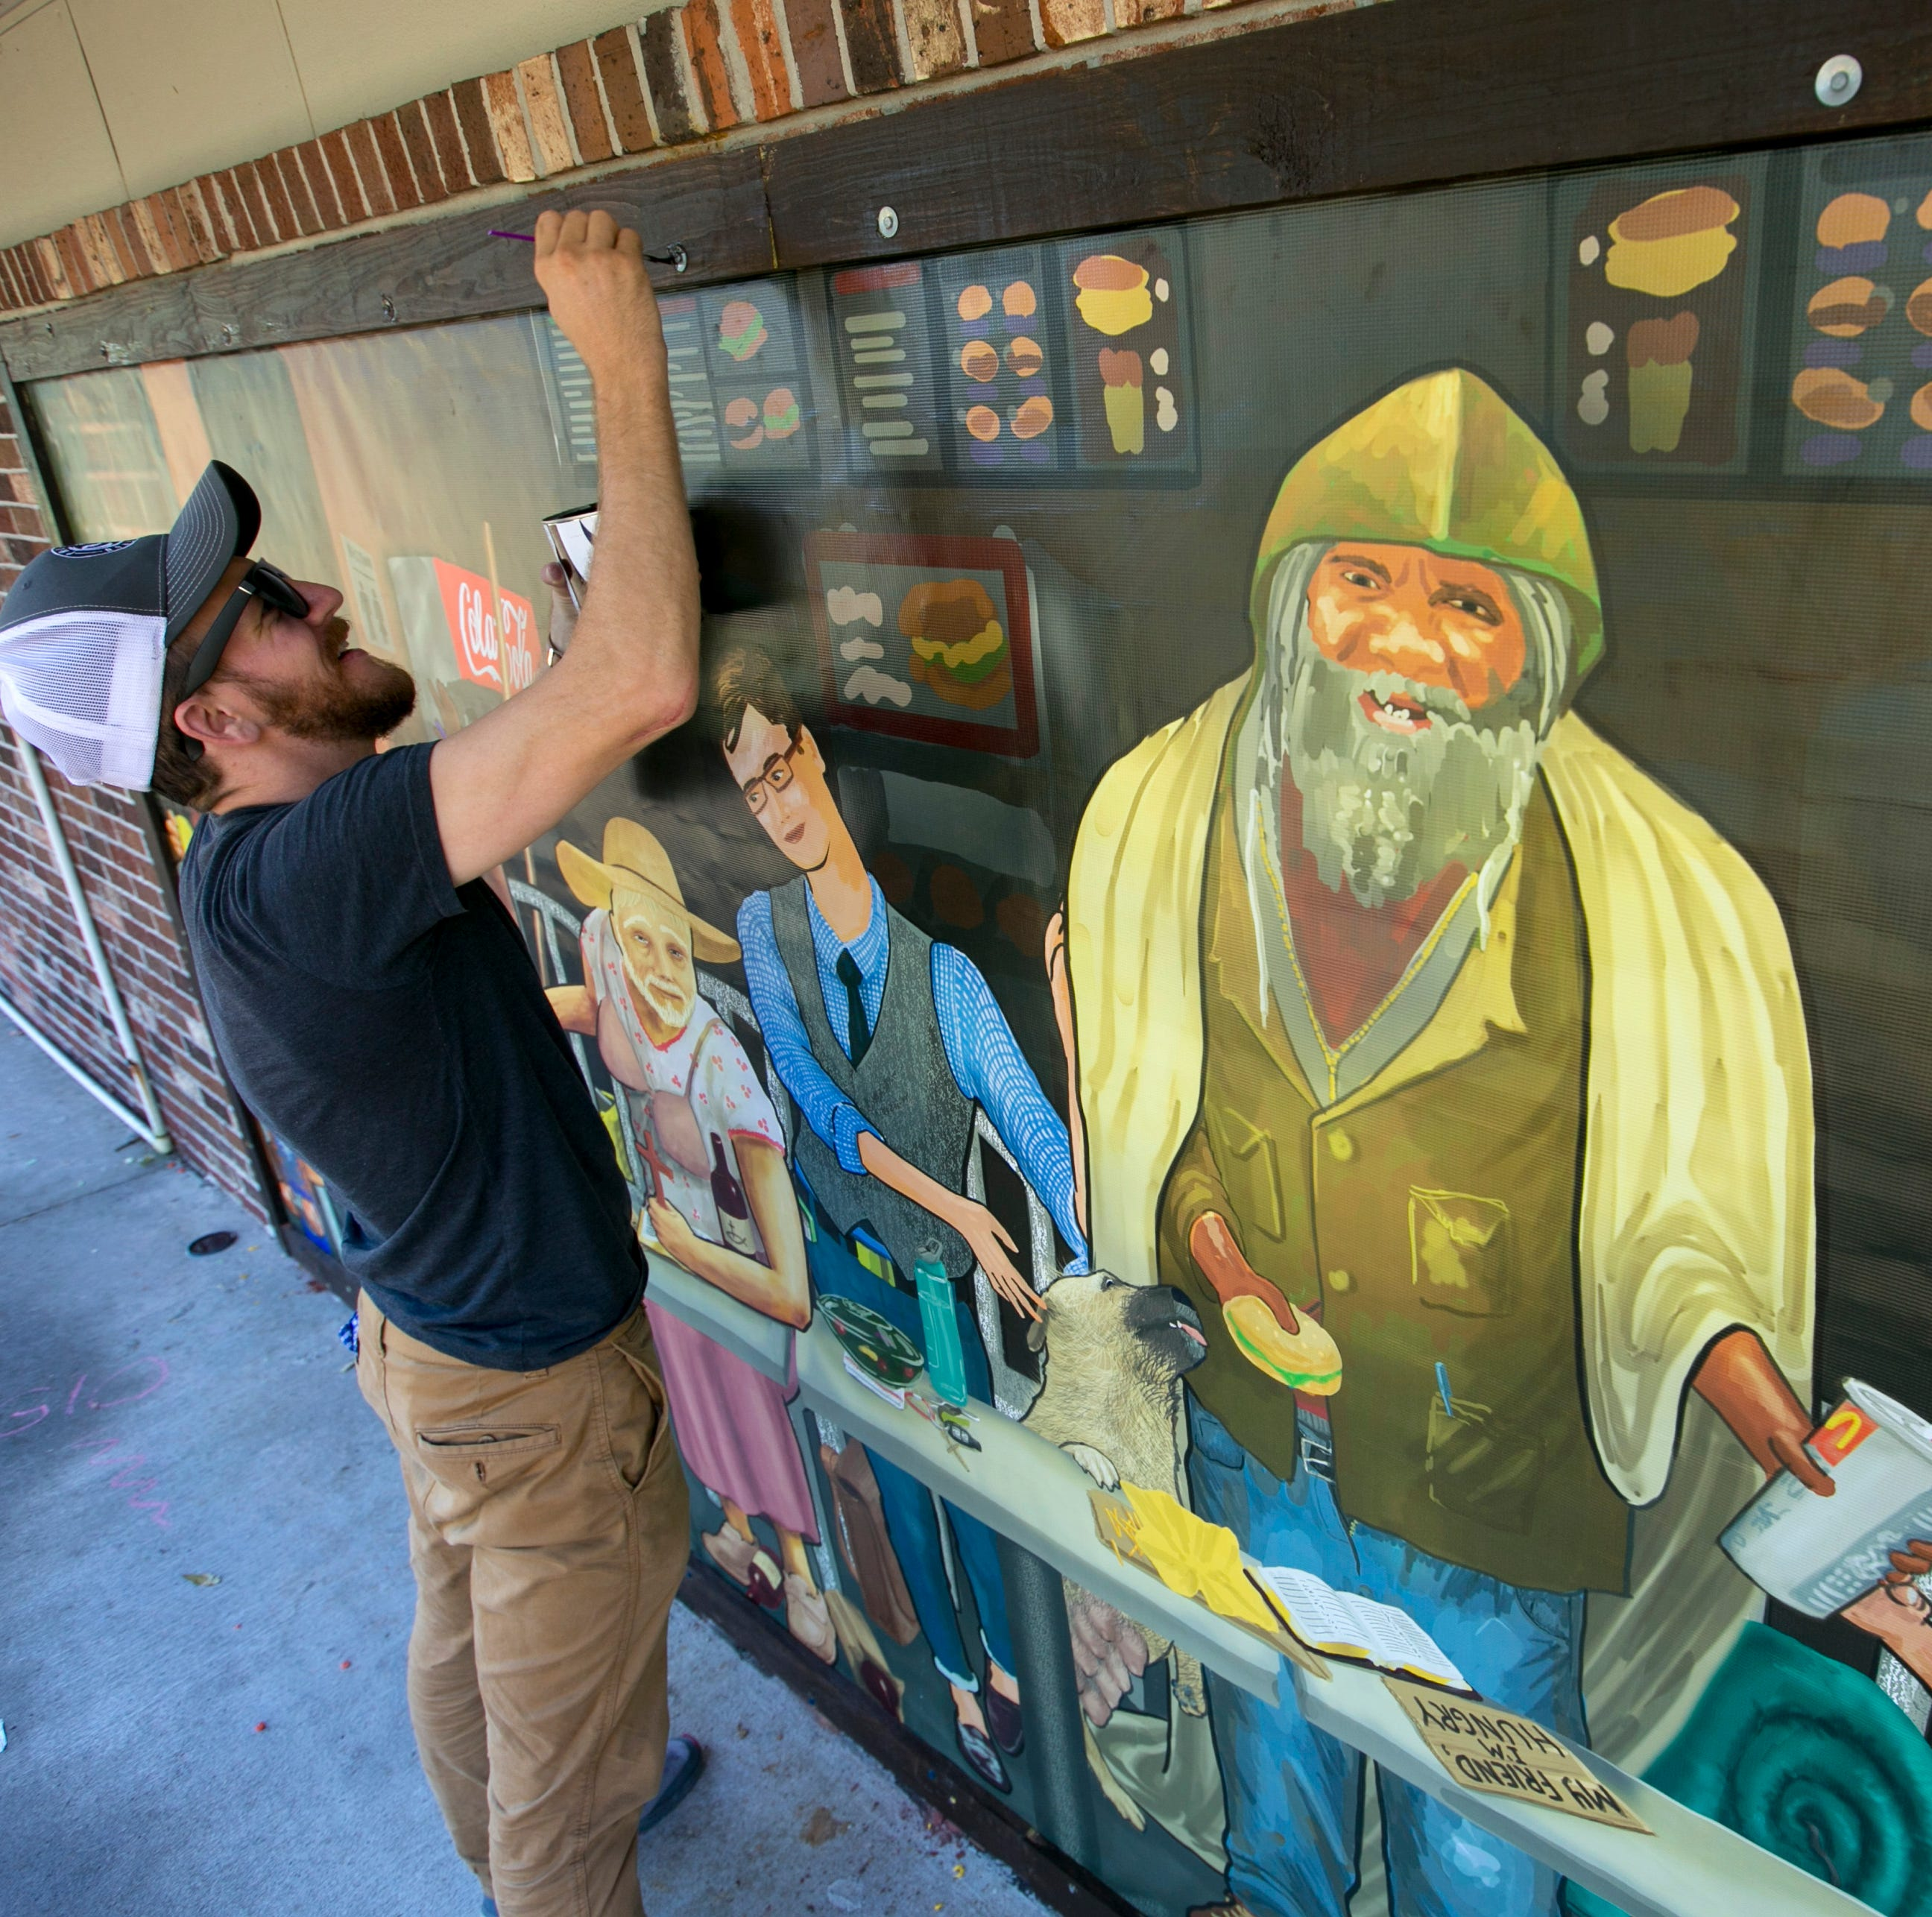 'Last Supper' mural in Fort Myers shows homeless Jesus, offers message of acceptance